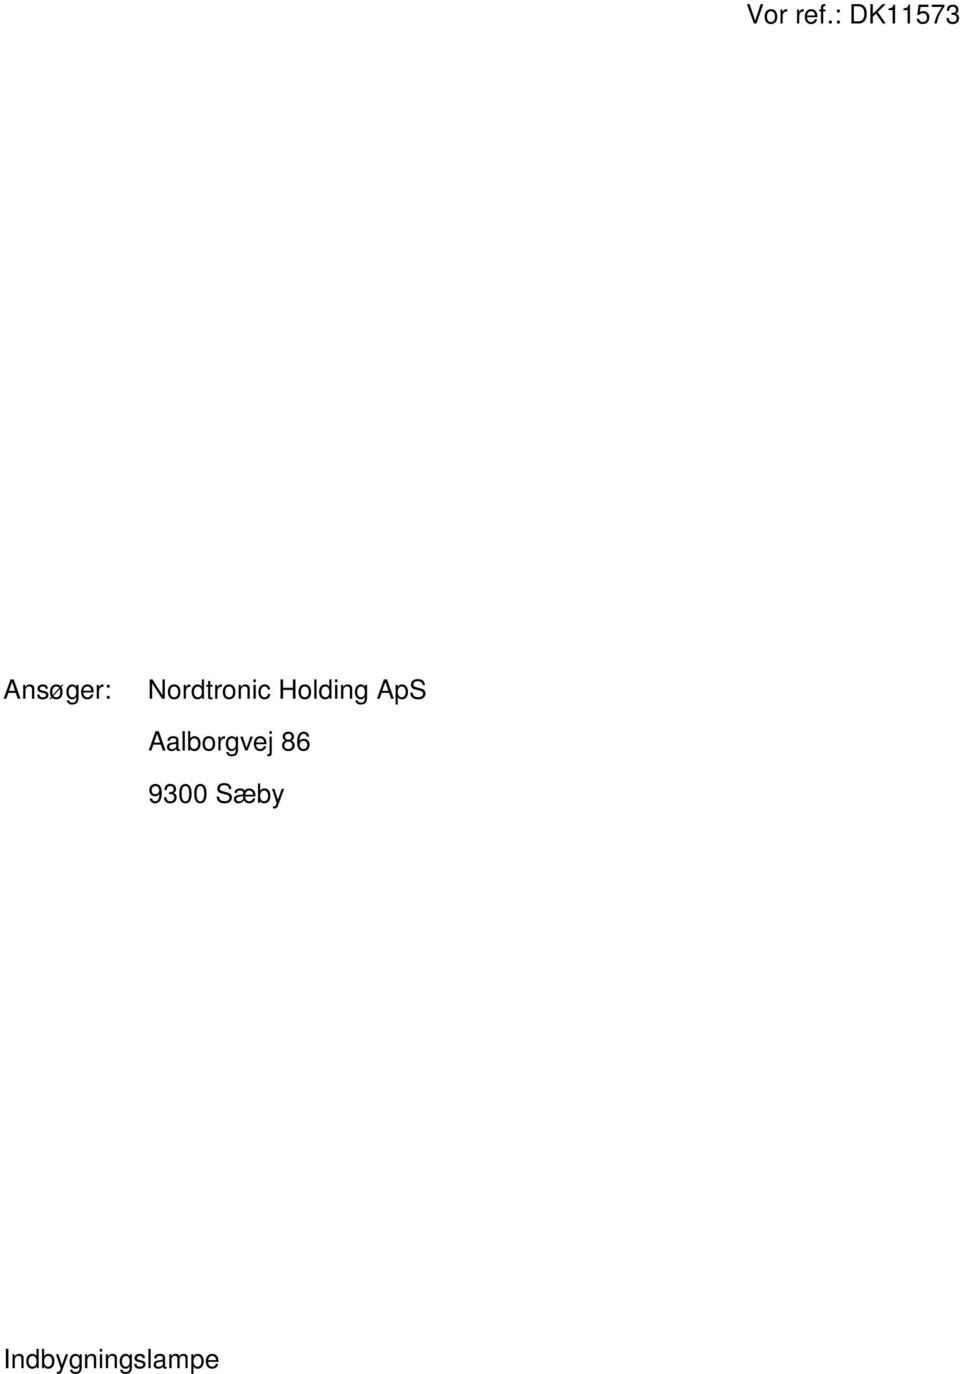 Nordtronic Holding